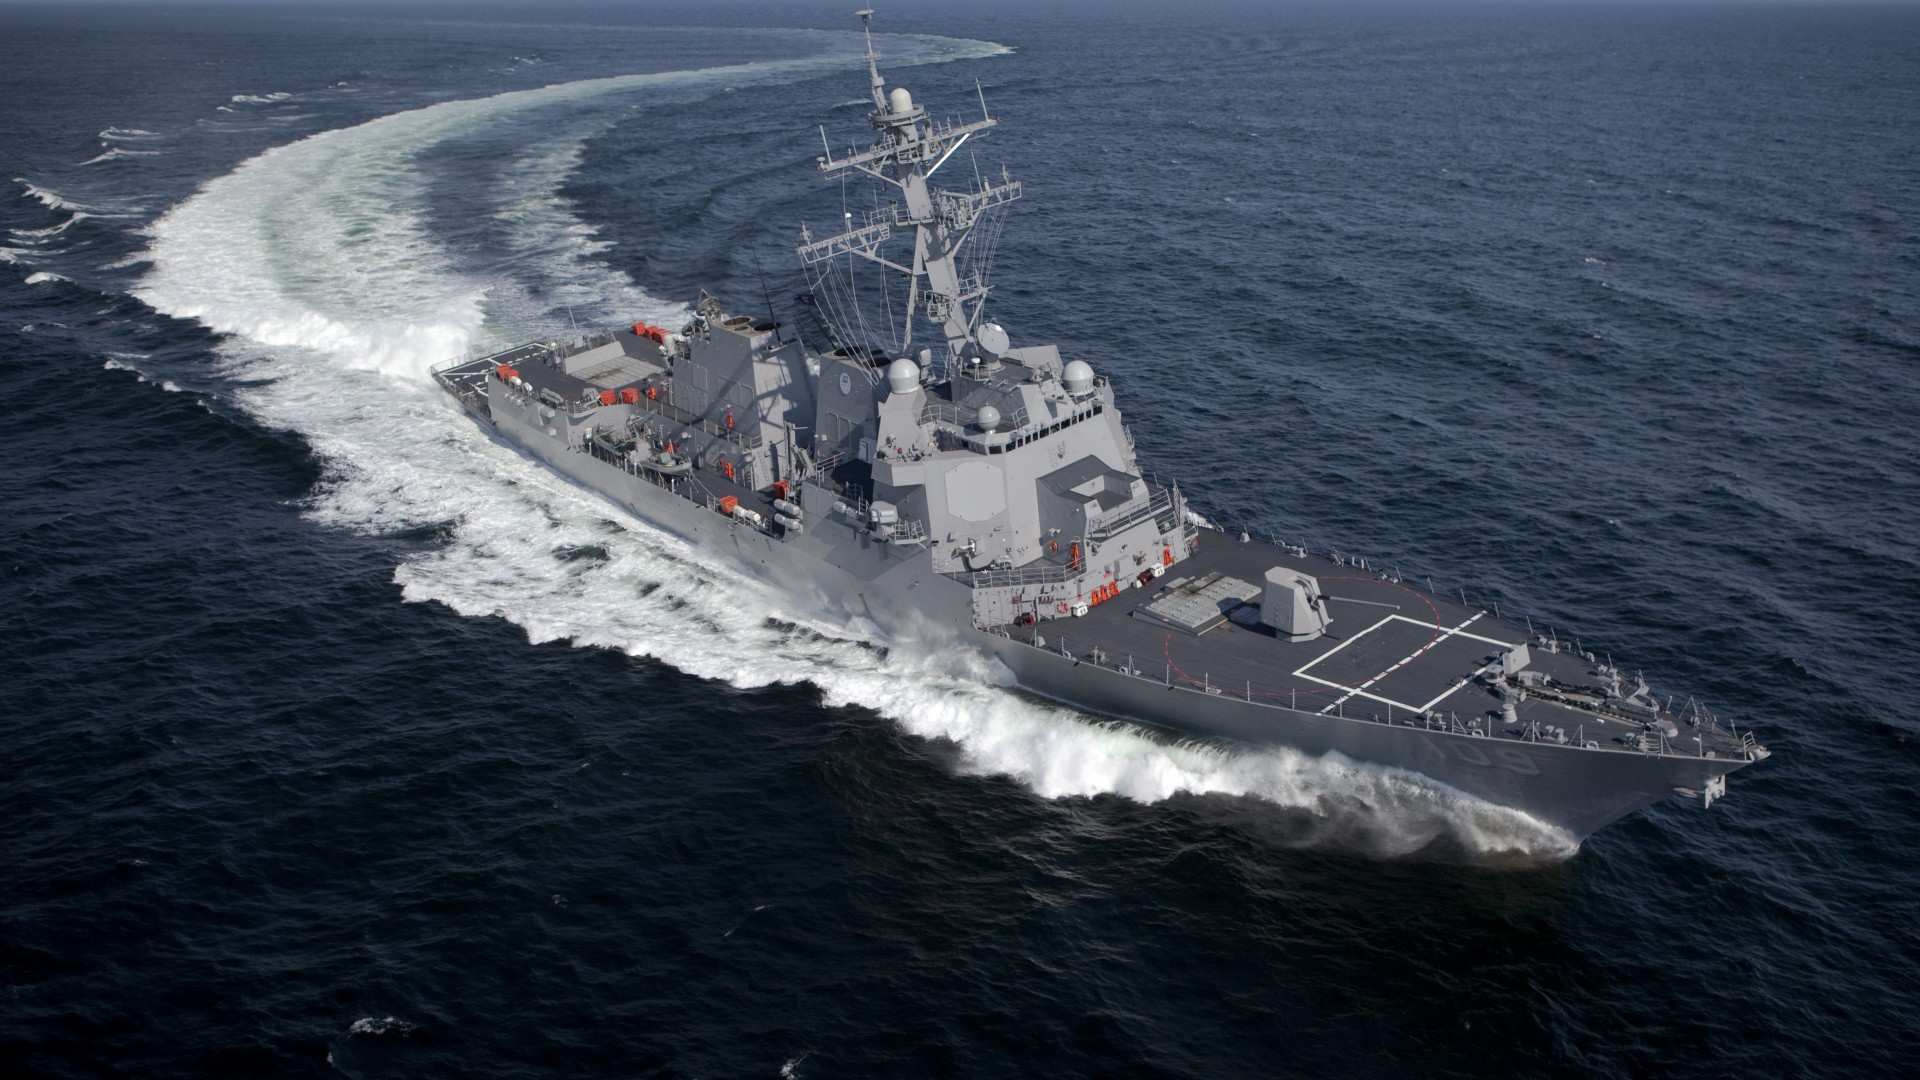 USS Jason Dunham, DDG-109, Arleigh Burke-class, destroyer, U.S. Navy, sea, maneuver (horizontal)